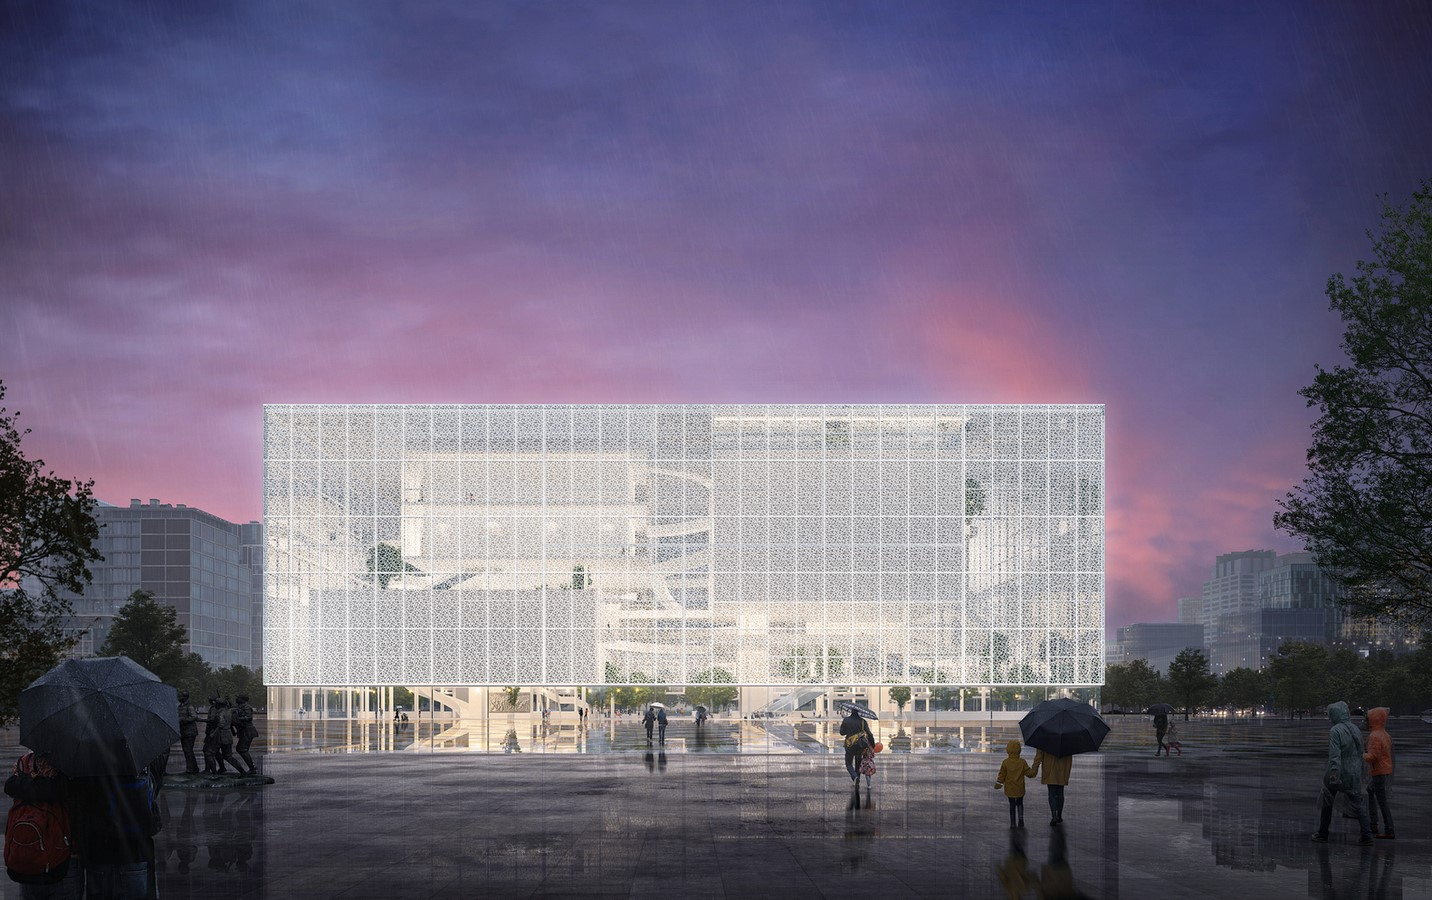 Shenzhen exhibition complex with transparent facade designed by Sou Fujimoto - Sheet1